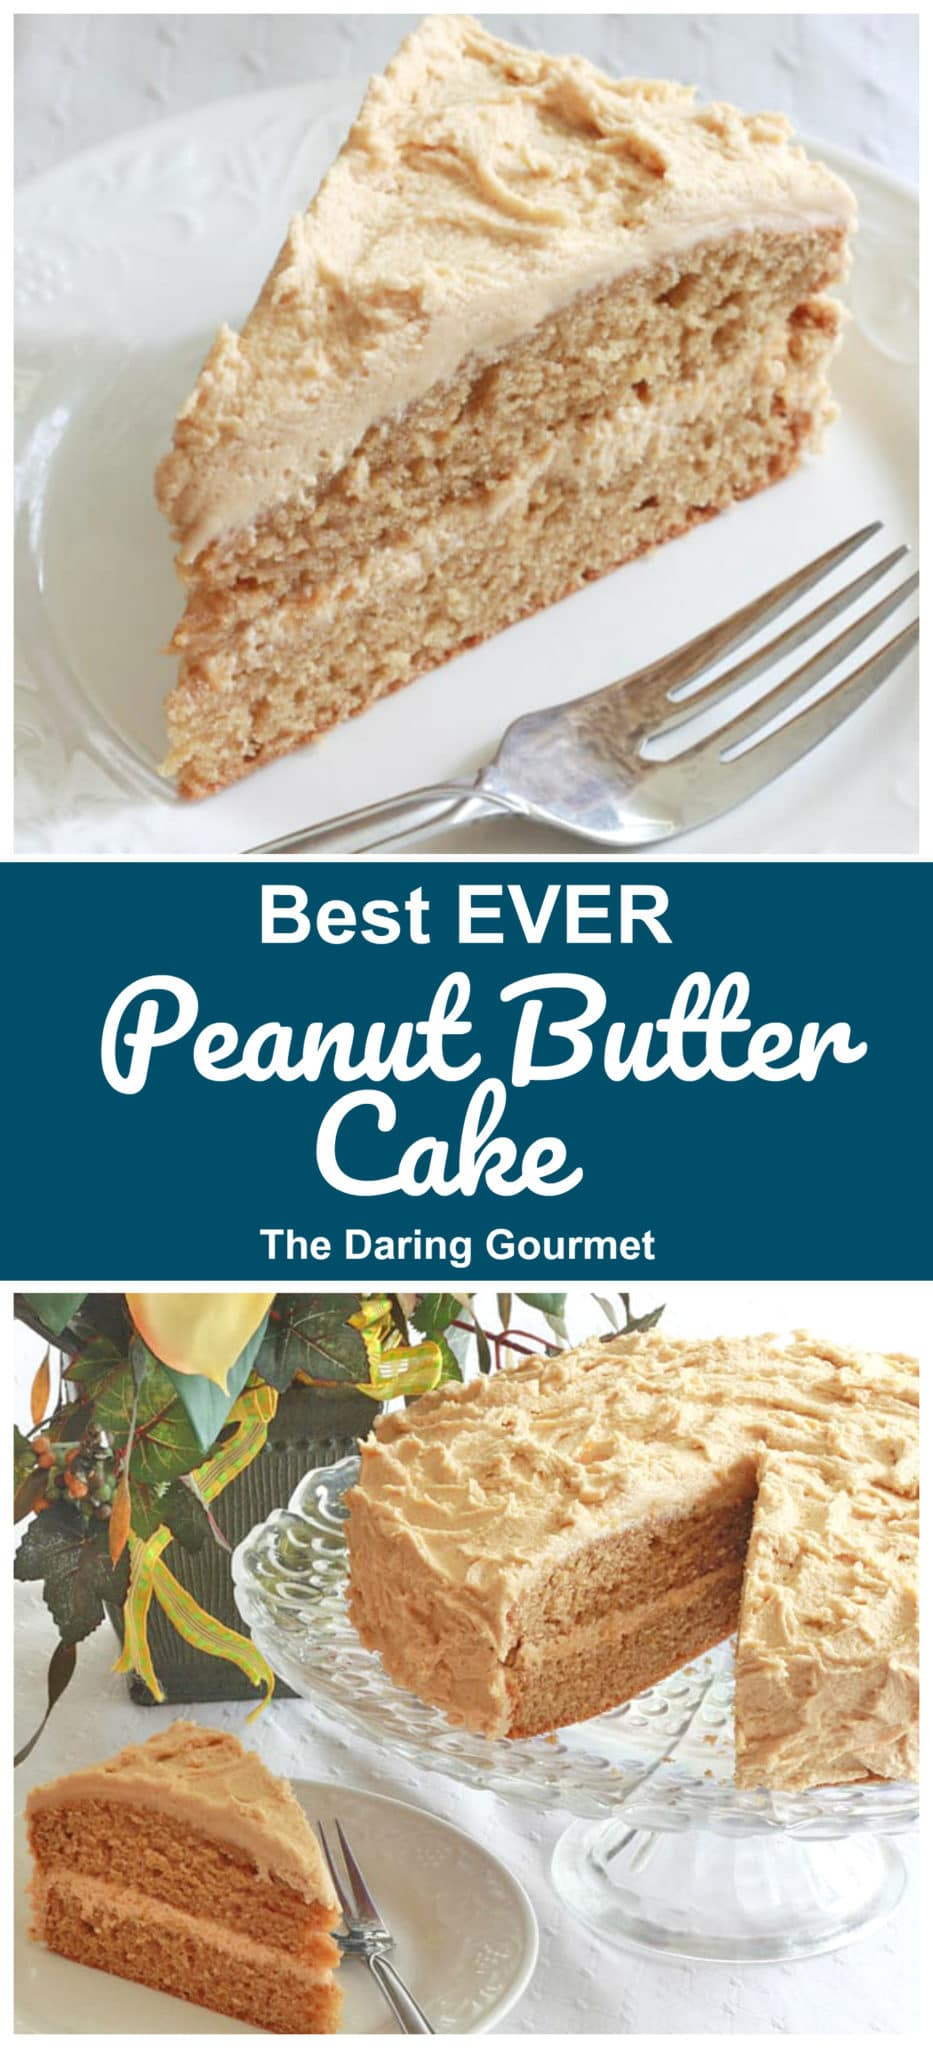 peanut butter cake recipe best ever natural unsweetened